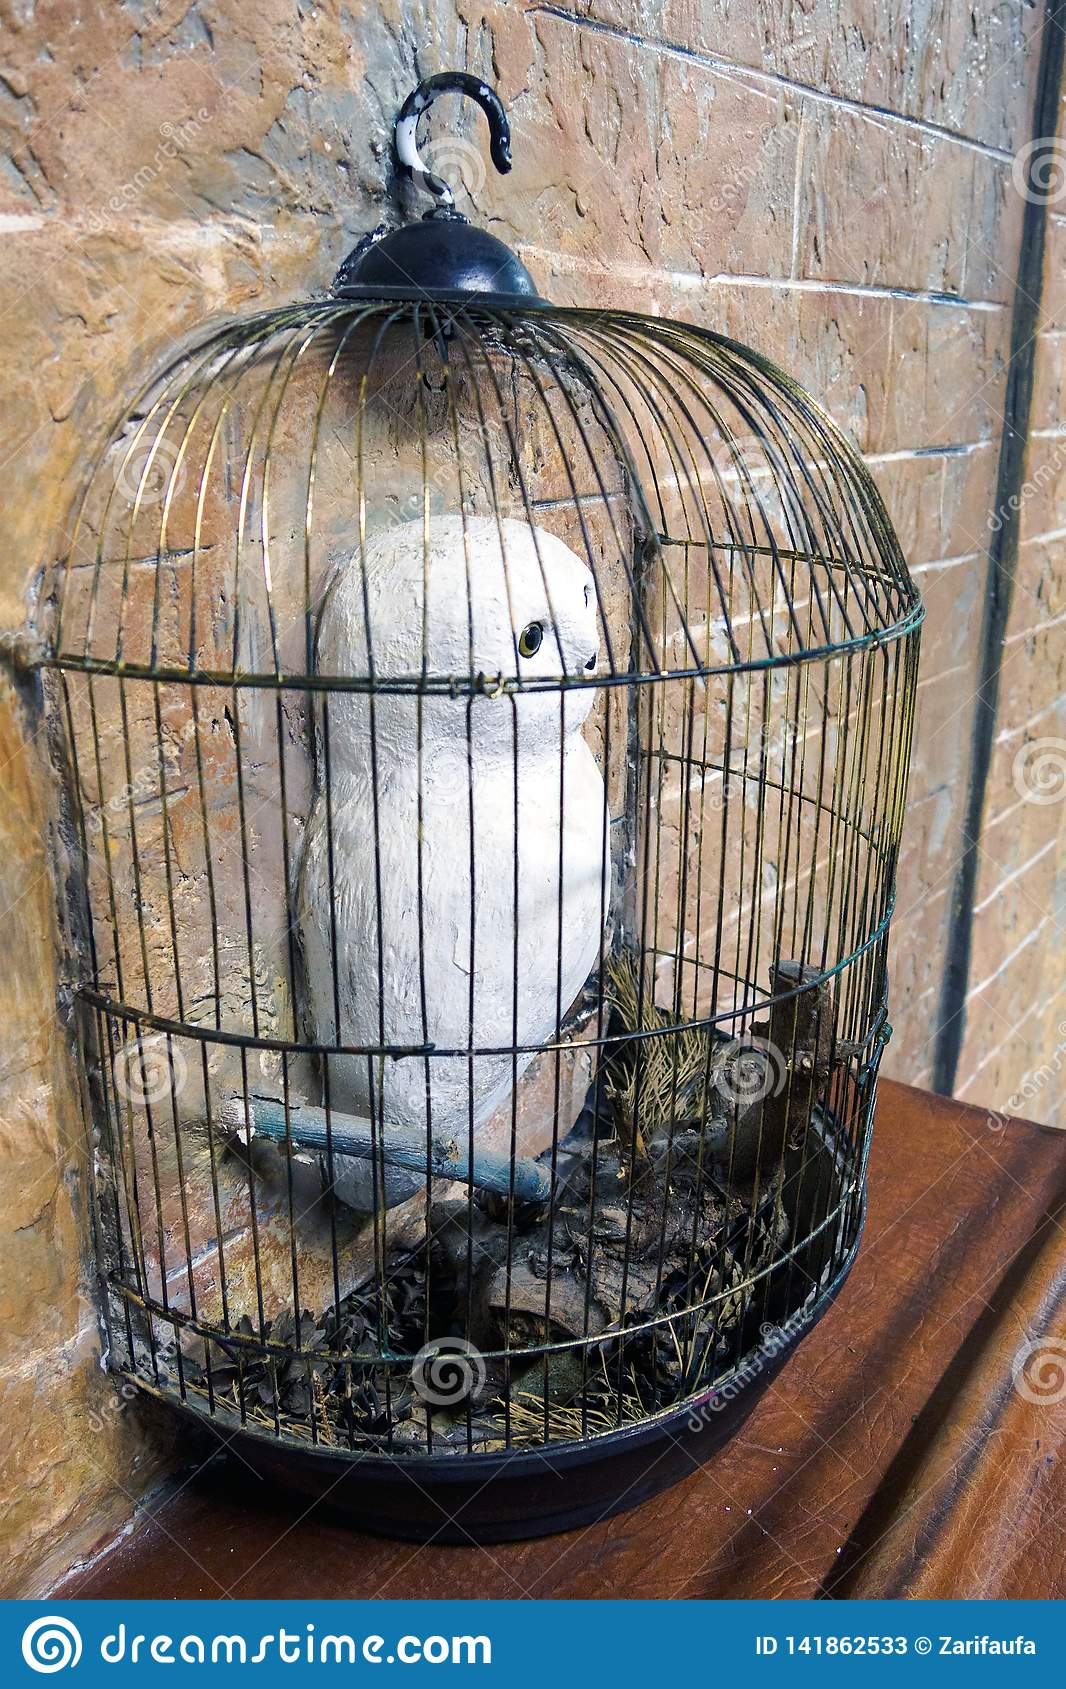 Sculpture of Harry Potter snowy owl in cage in wall